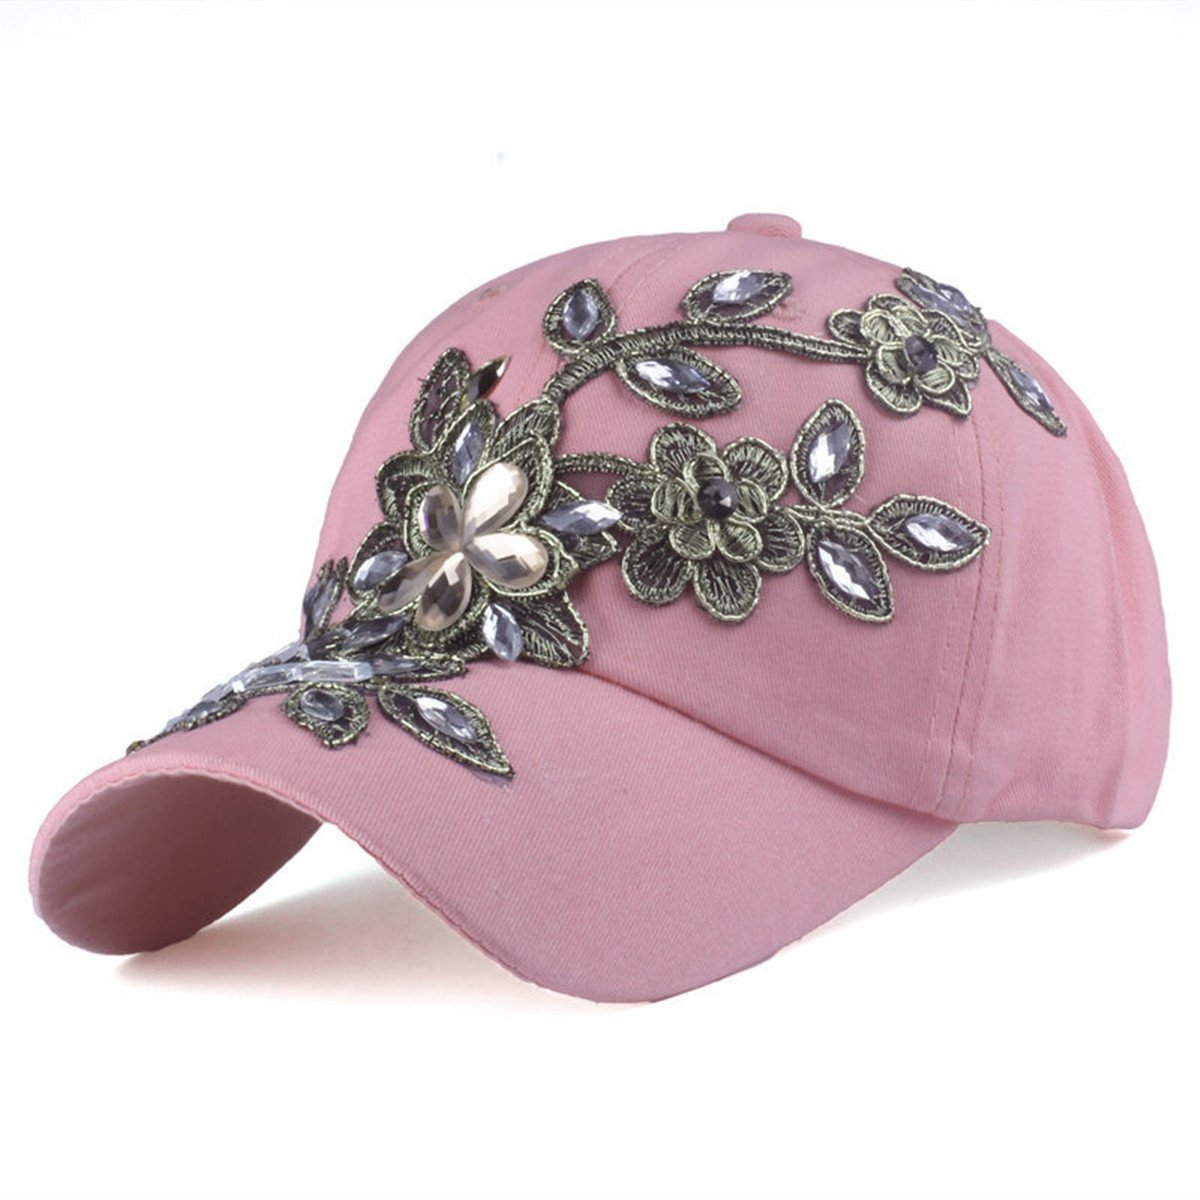 Cozylkx Flower Pattern Adjstable Baseball Cap Womens Sun Hats (Pink-Cotton)